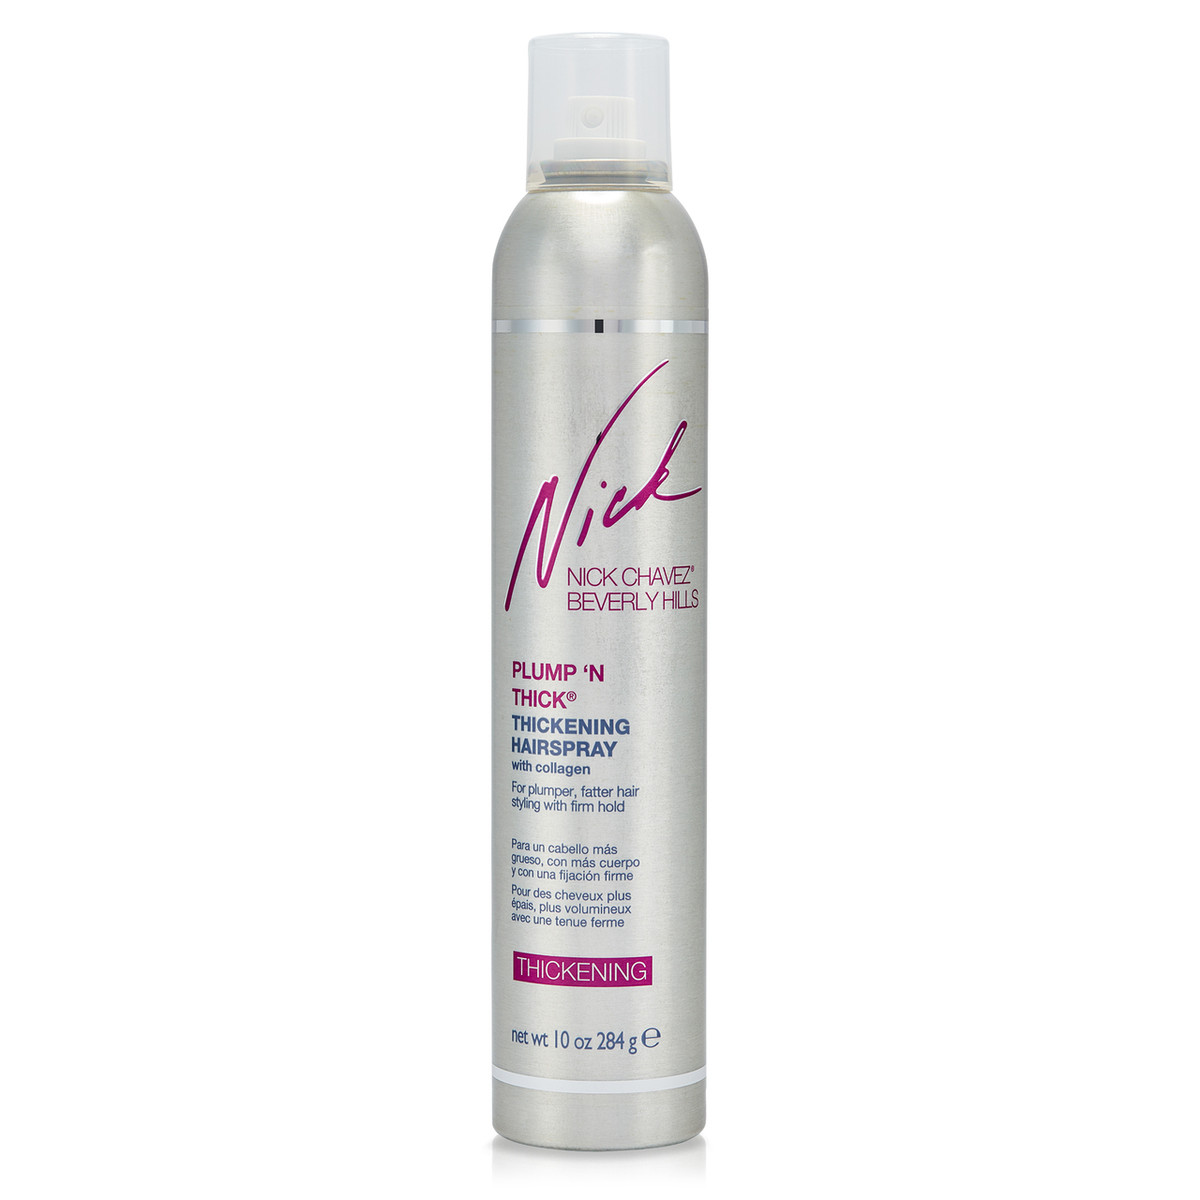 Plump 'N Thick Thickening Hairspray 10oz